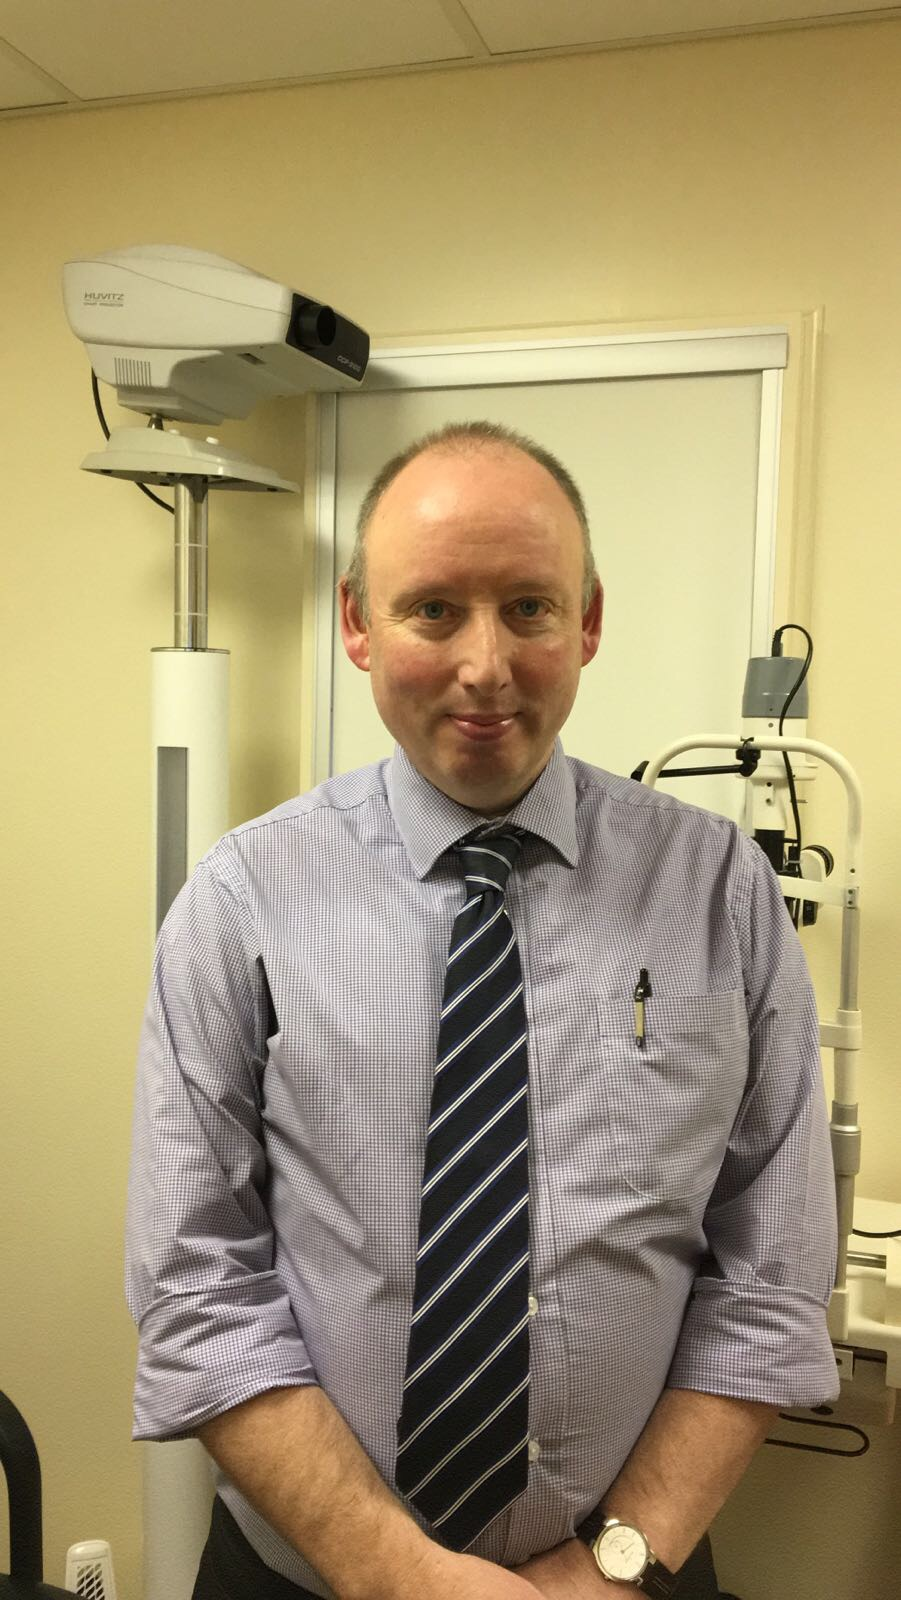 Tim BSc MCOptom   Optician   Tim is a qualified Optician with many years of experience in all aspects of optometry. Committed to providing the best in eye-care for all of his customers. He has been with the  SightDirect  team since we started providing eye-care in 2011.